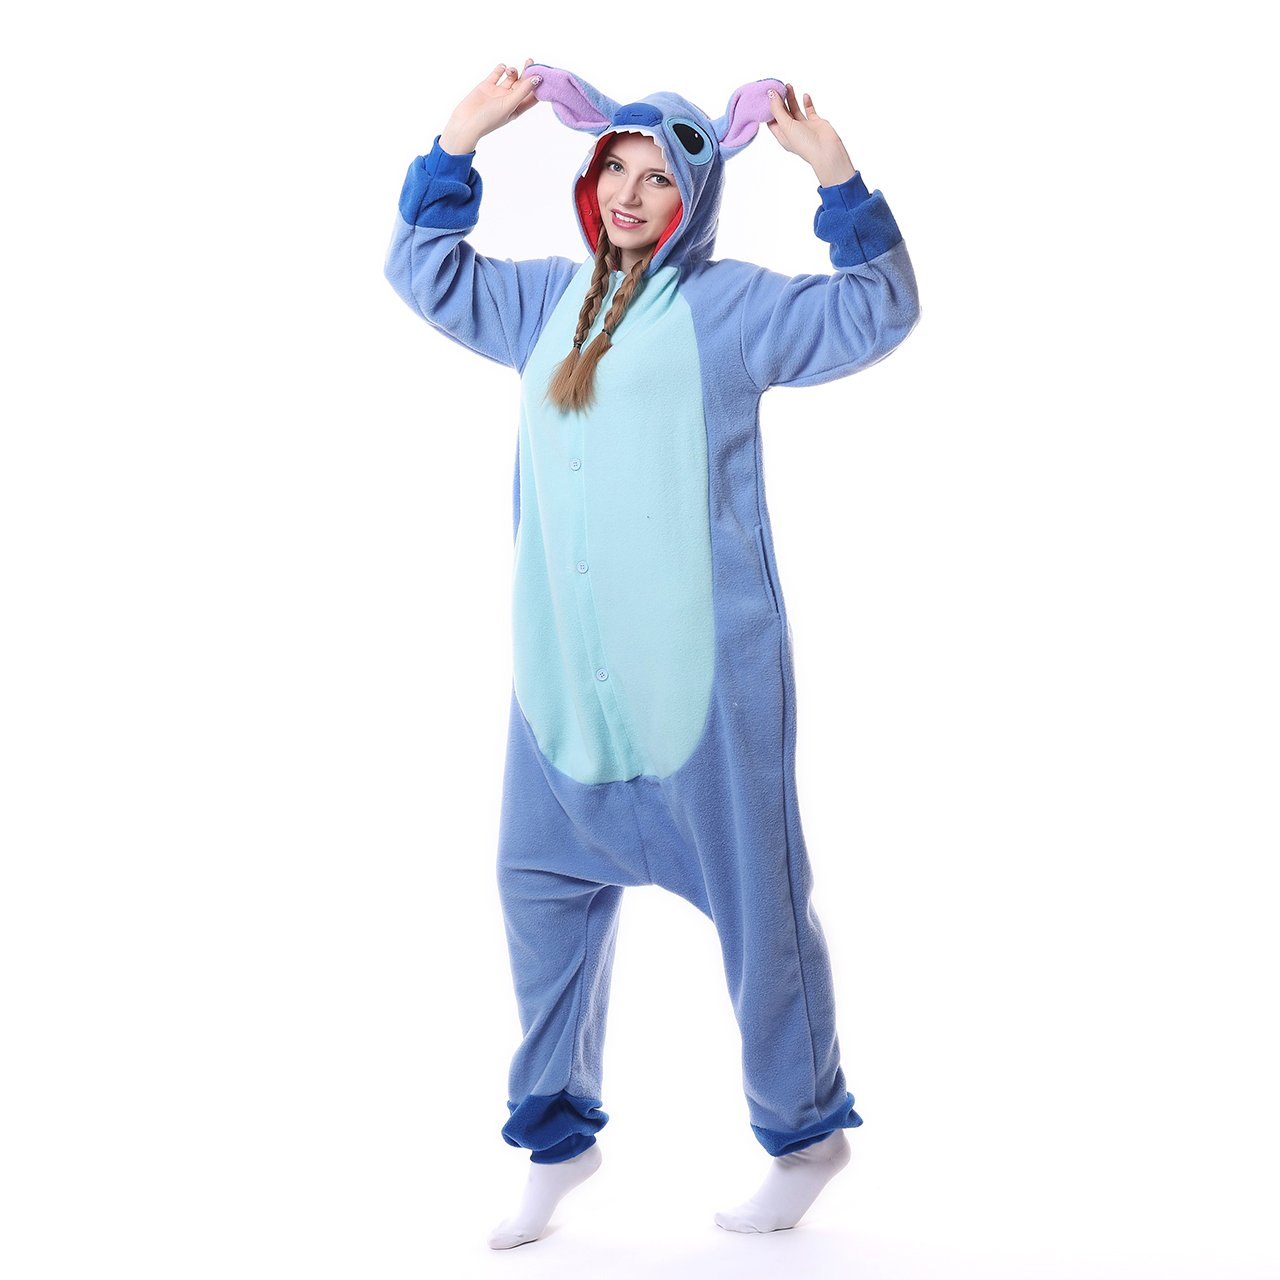 MEILIS Cartoon Sleepsuit Costume Cosplay Lounge Wear Kigurumi Onesie Pajamas Stitch,Birthday or Christmas Gift,Blue by MEILIS (Image #2)